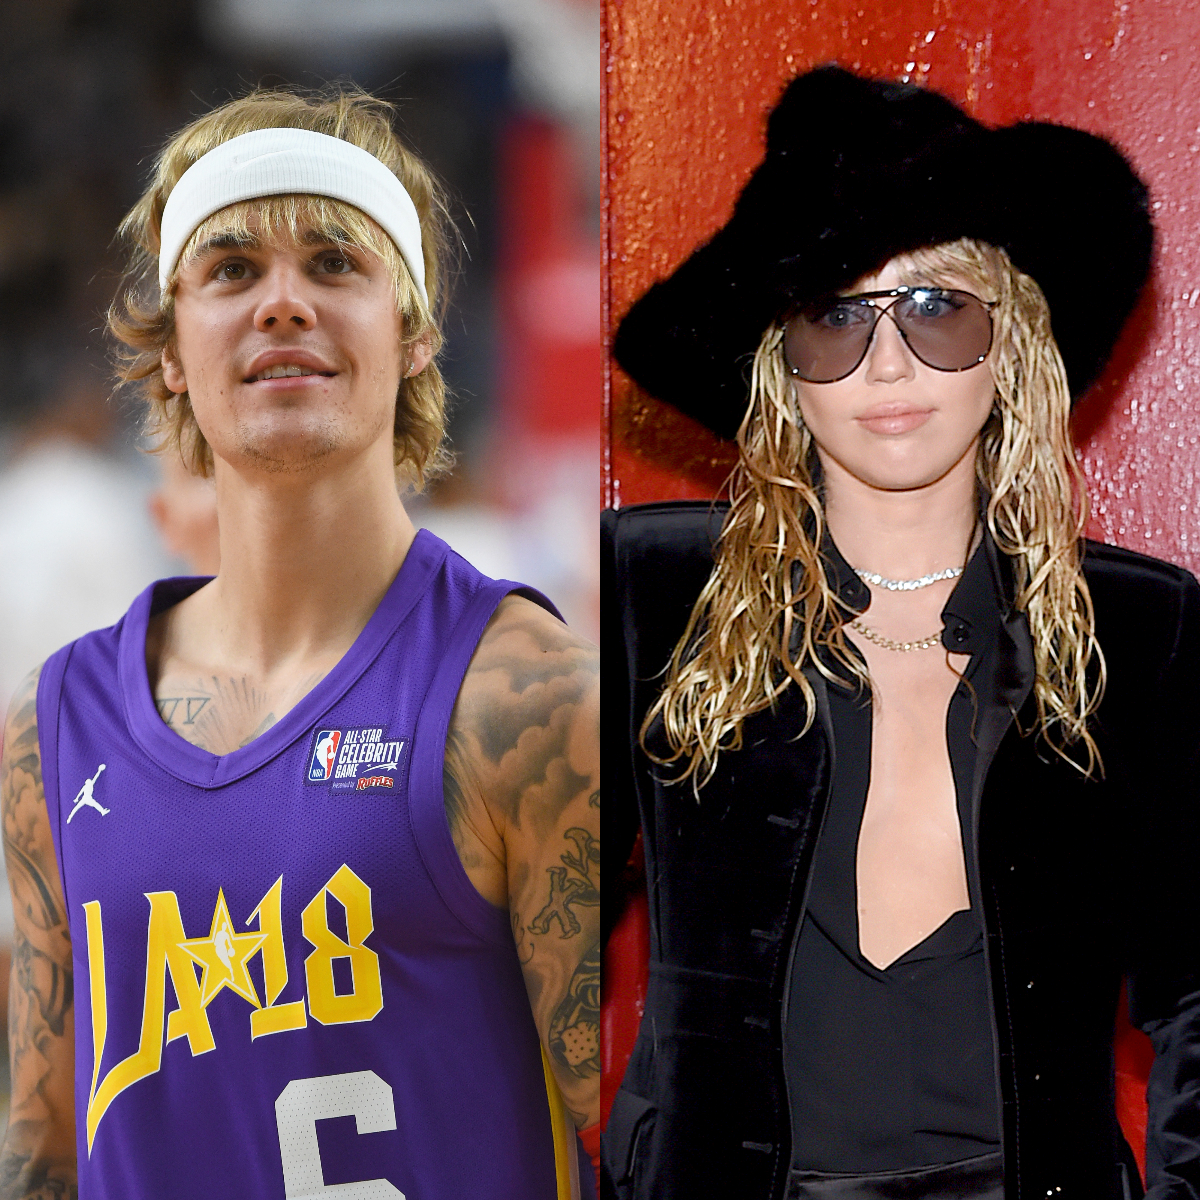 Justin Bieber to appear on Saturday Night Live and Miley Cyrus is jealous; Here's Why